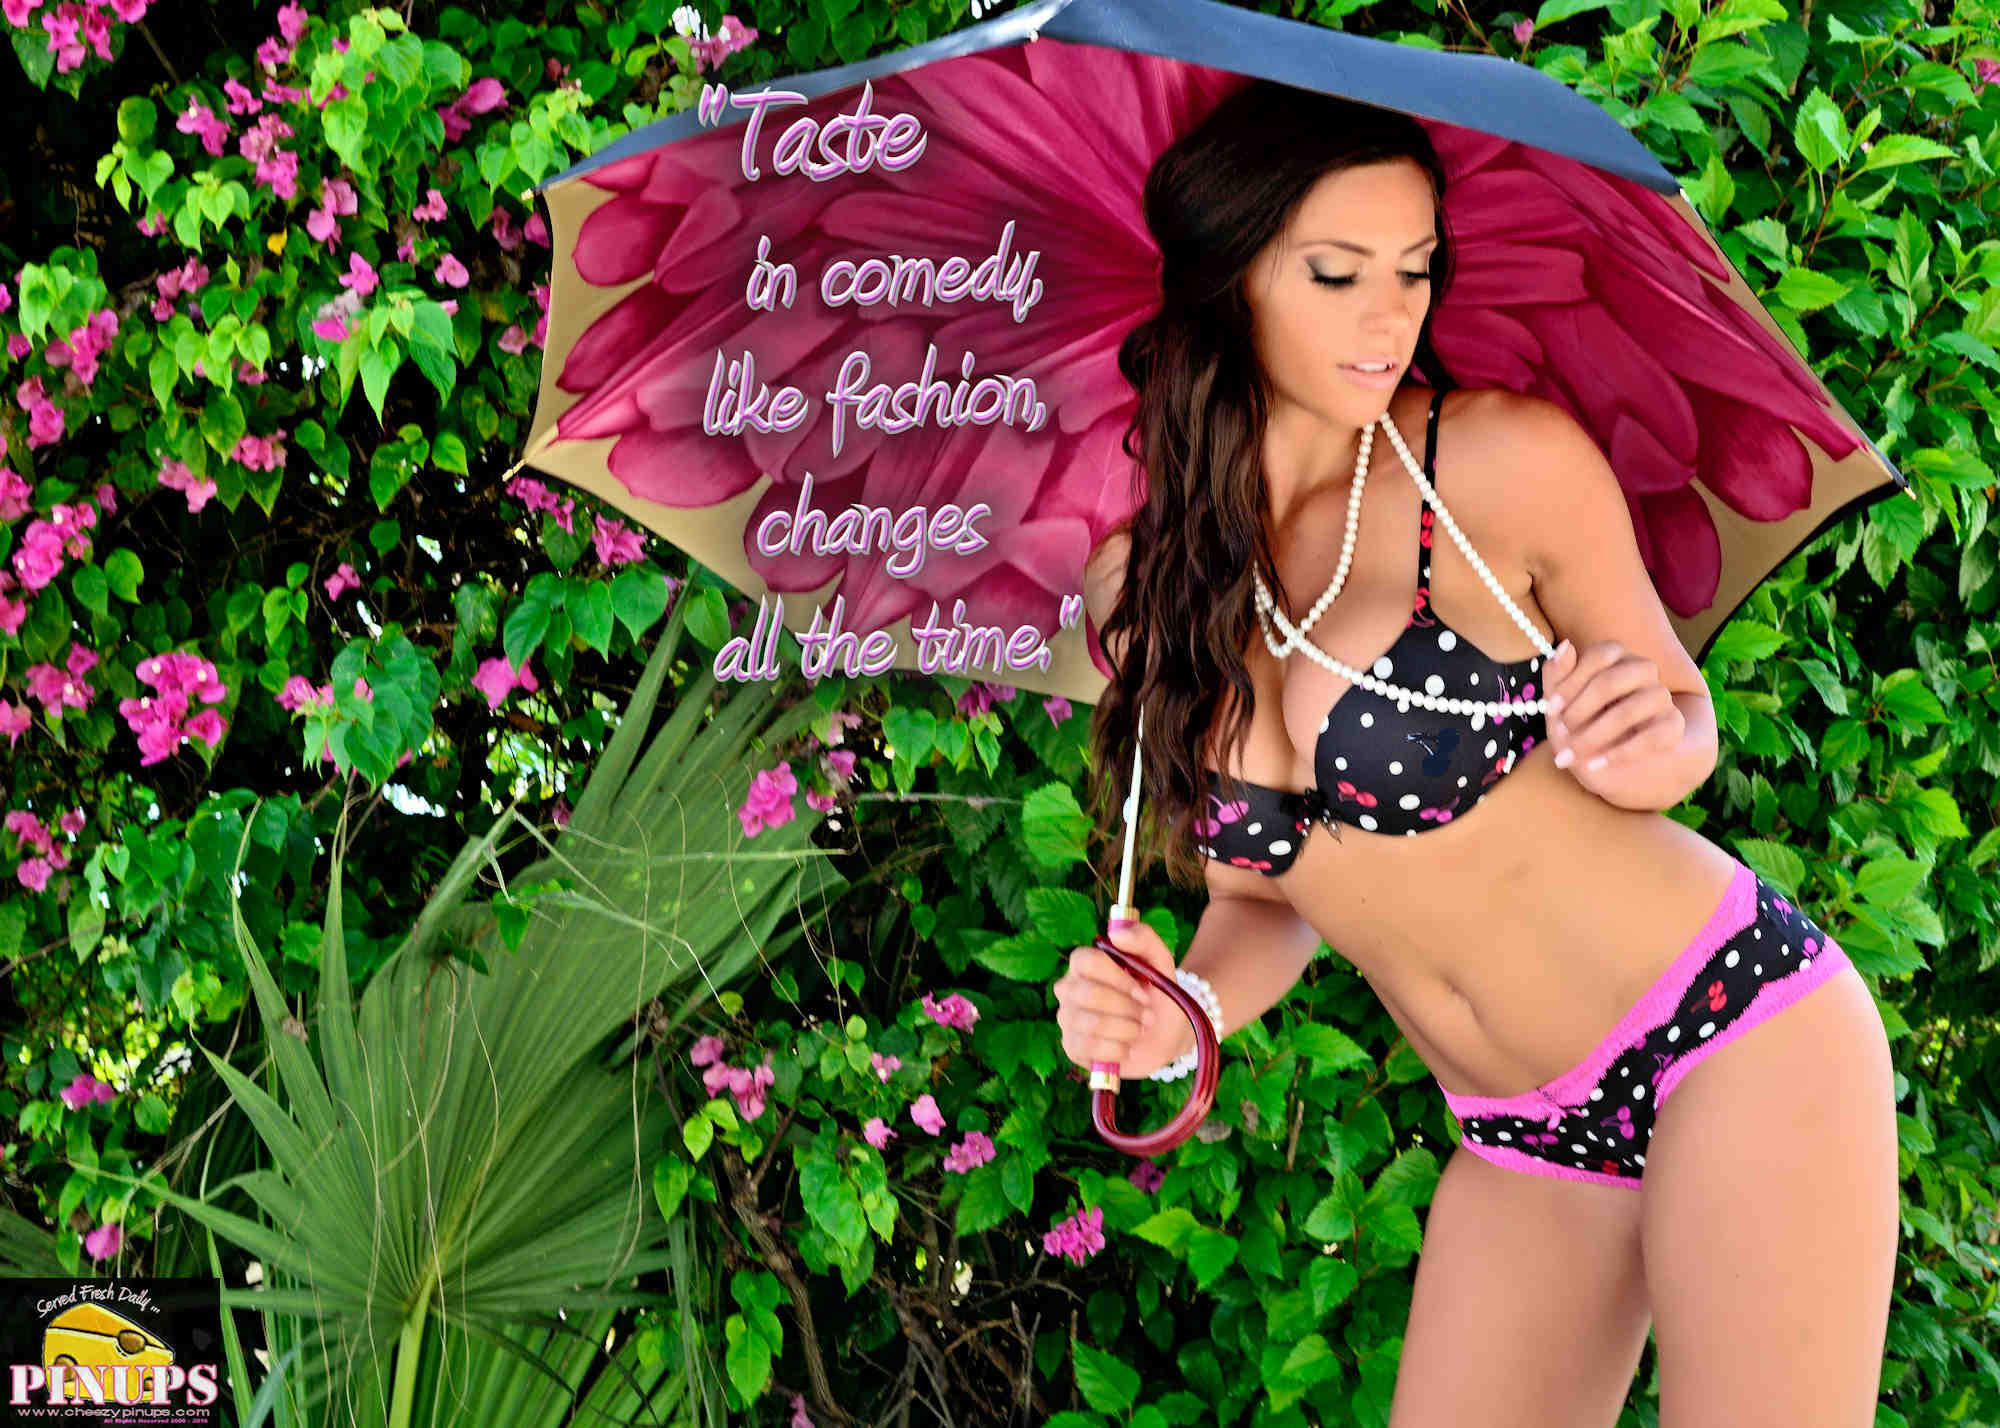 """Cheezy Pinup - August 16, 2018   """"Taste in comedy, like fashion, changes all the time."""" - @SteveCarell Model: @MissKaraCooper"""